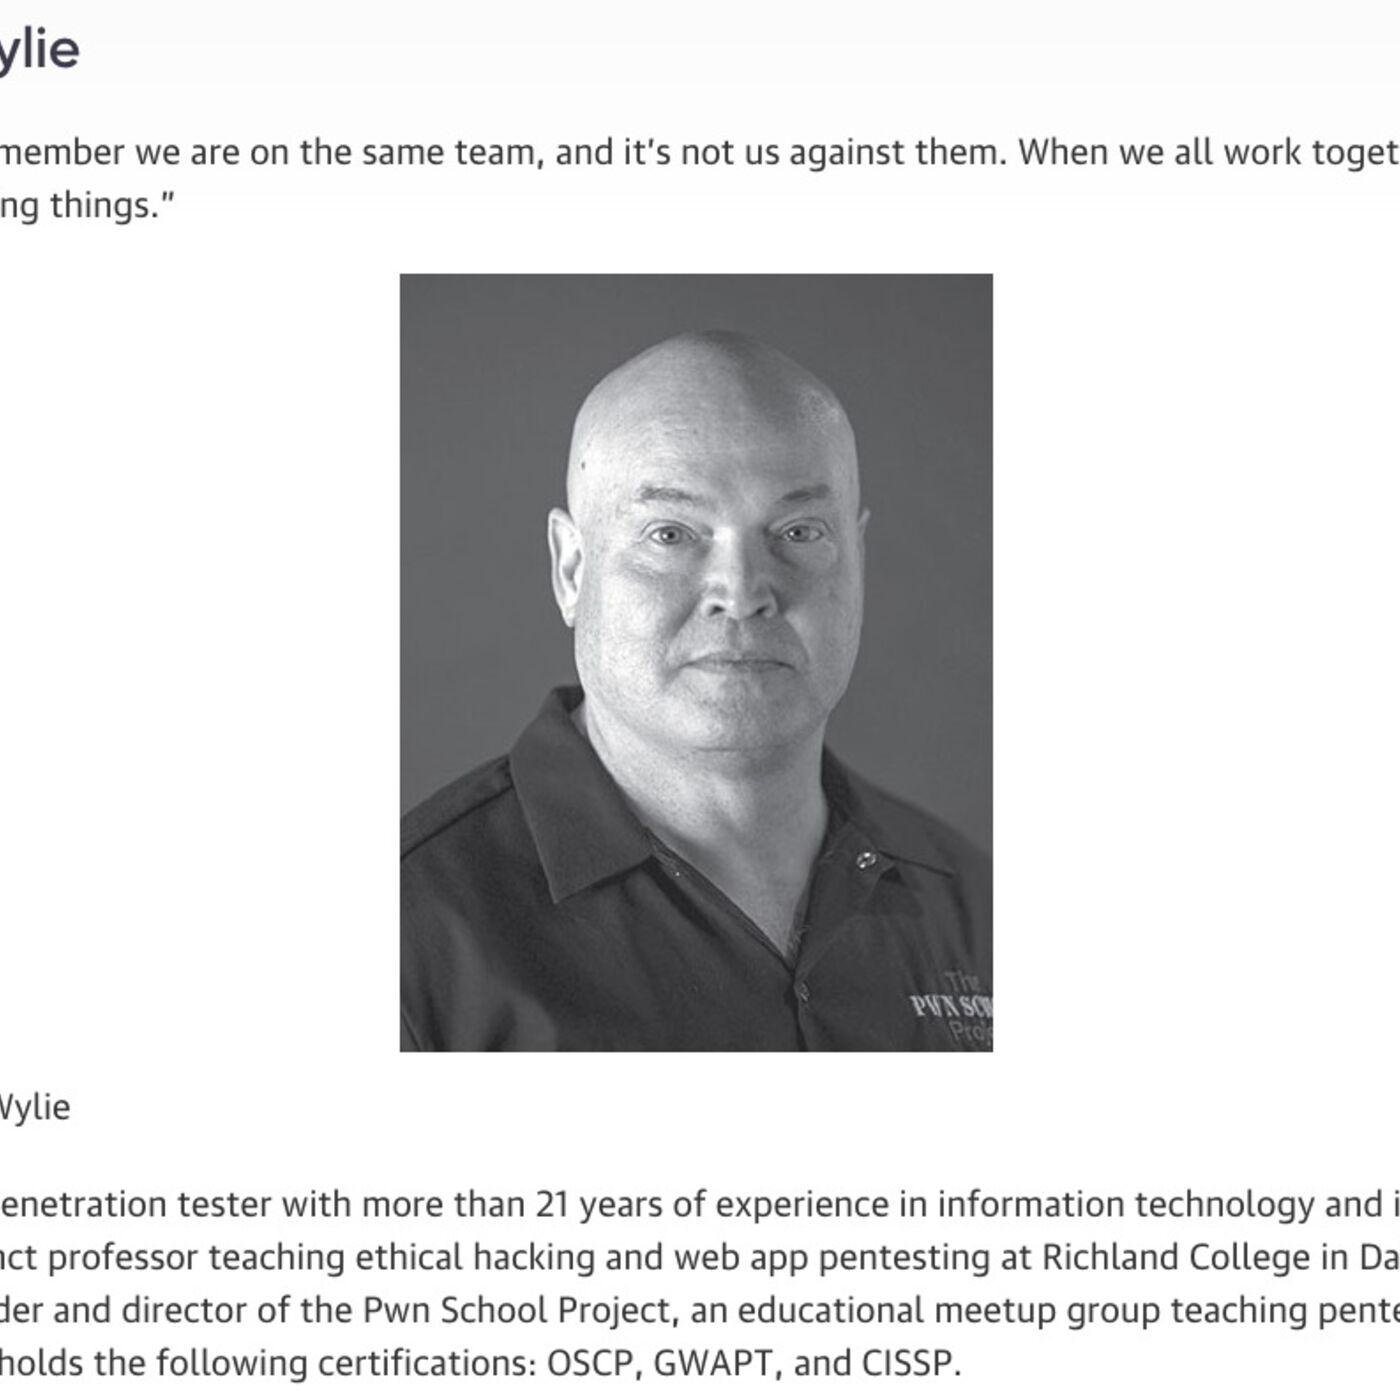 Phillip Wylie : PenTester, Professor, and Founder of The PwnSchool Project